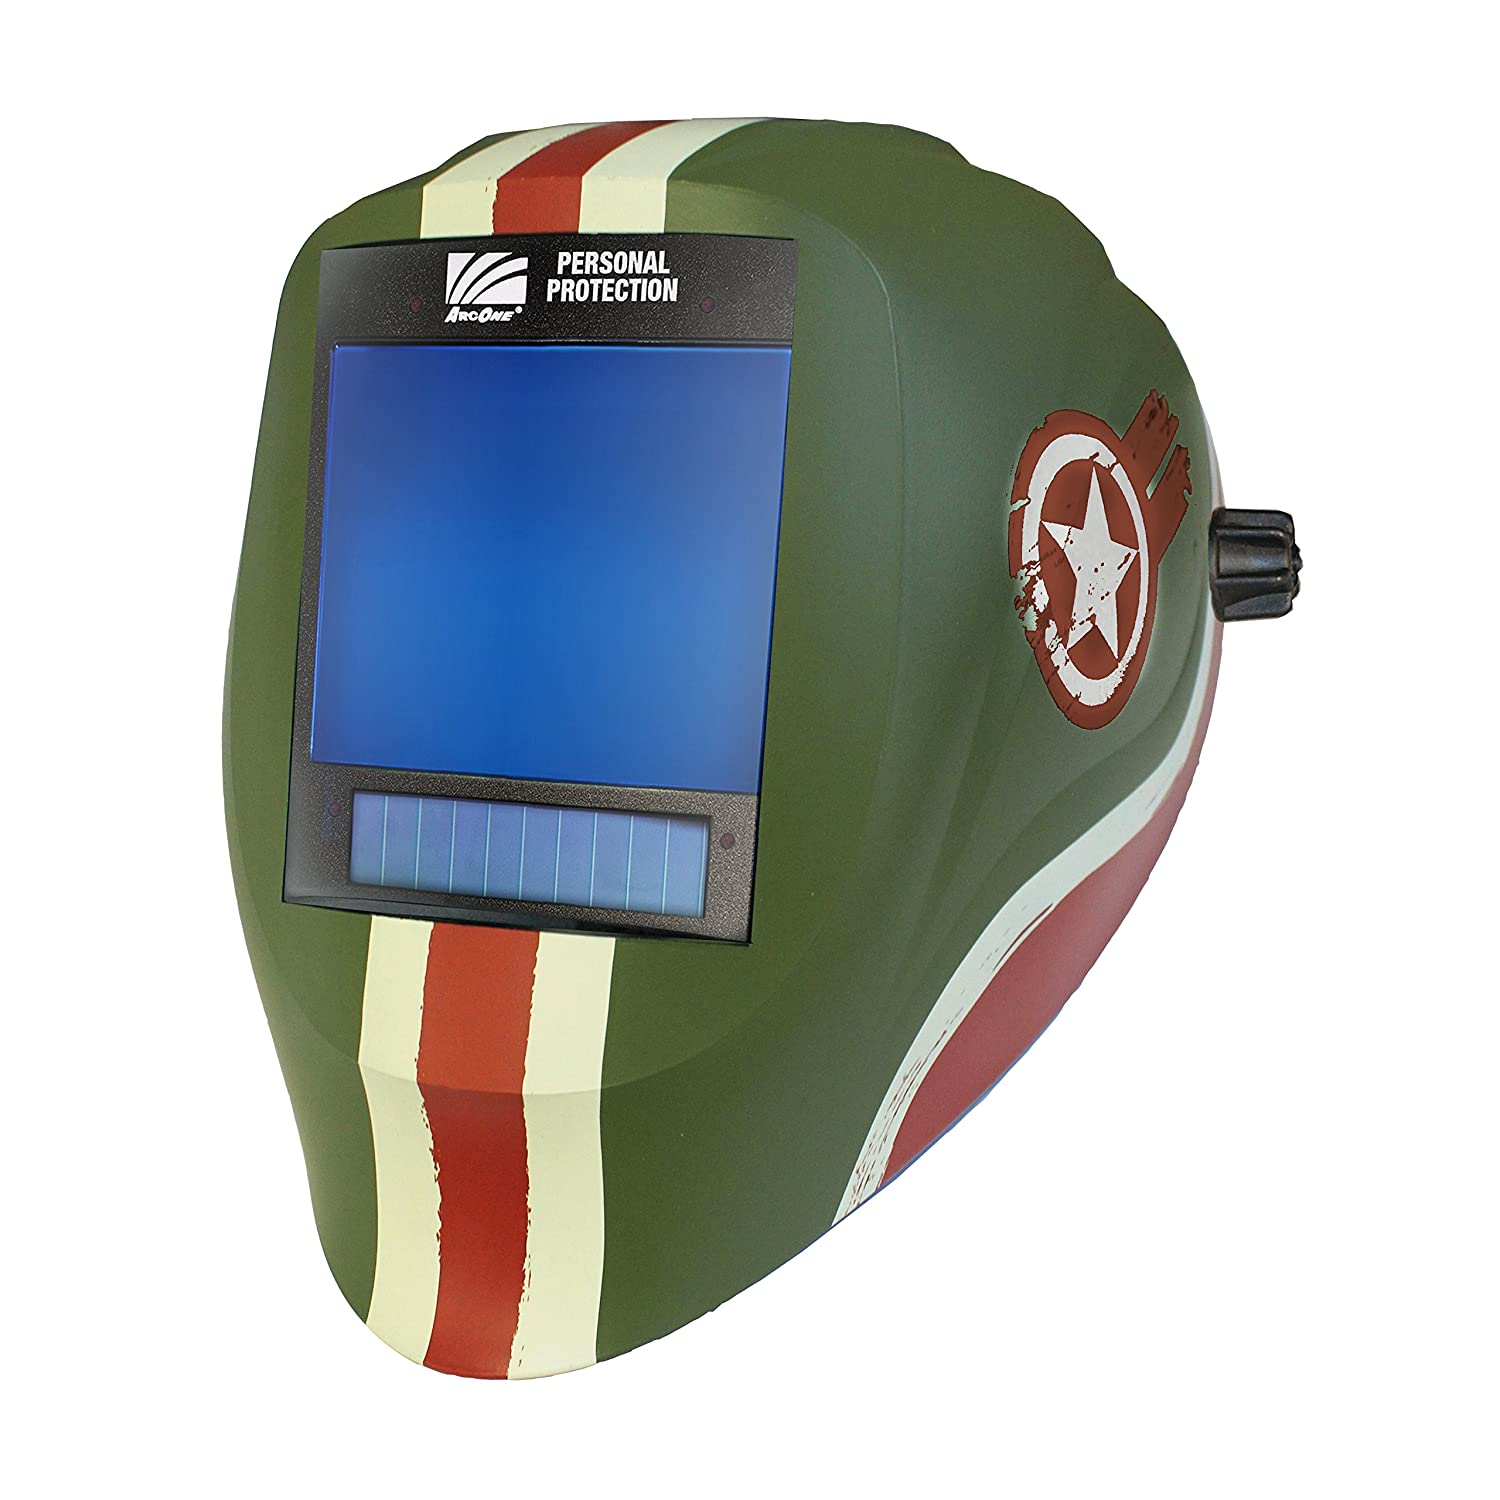 ArcOne AP-X81VX-1523 Vision Welding Helmet Shell with X81VX XTreme 5 x 4 Digital ASIC and X-TIG Auto-Darkening Filter and AirPlus Respiratory System Speedway